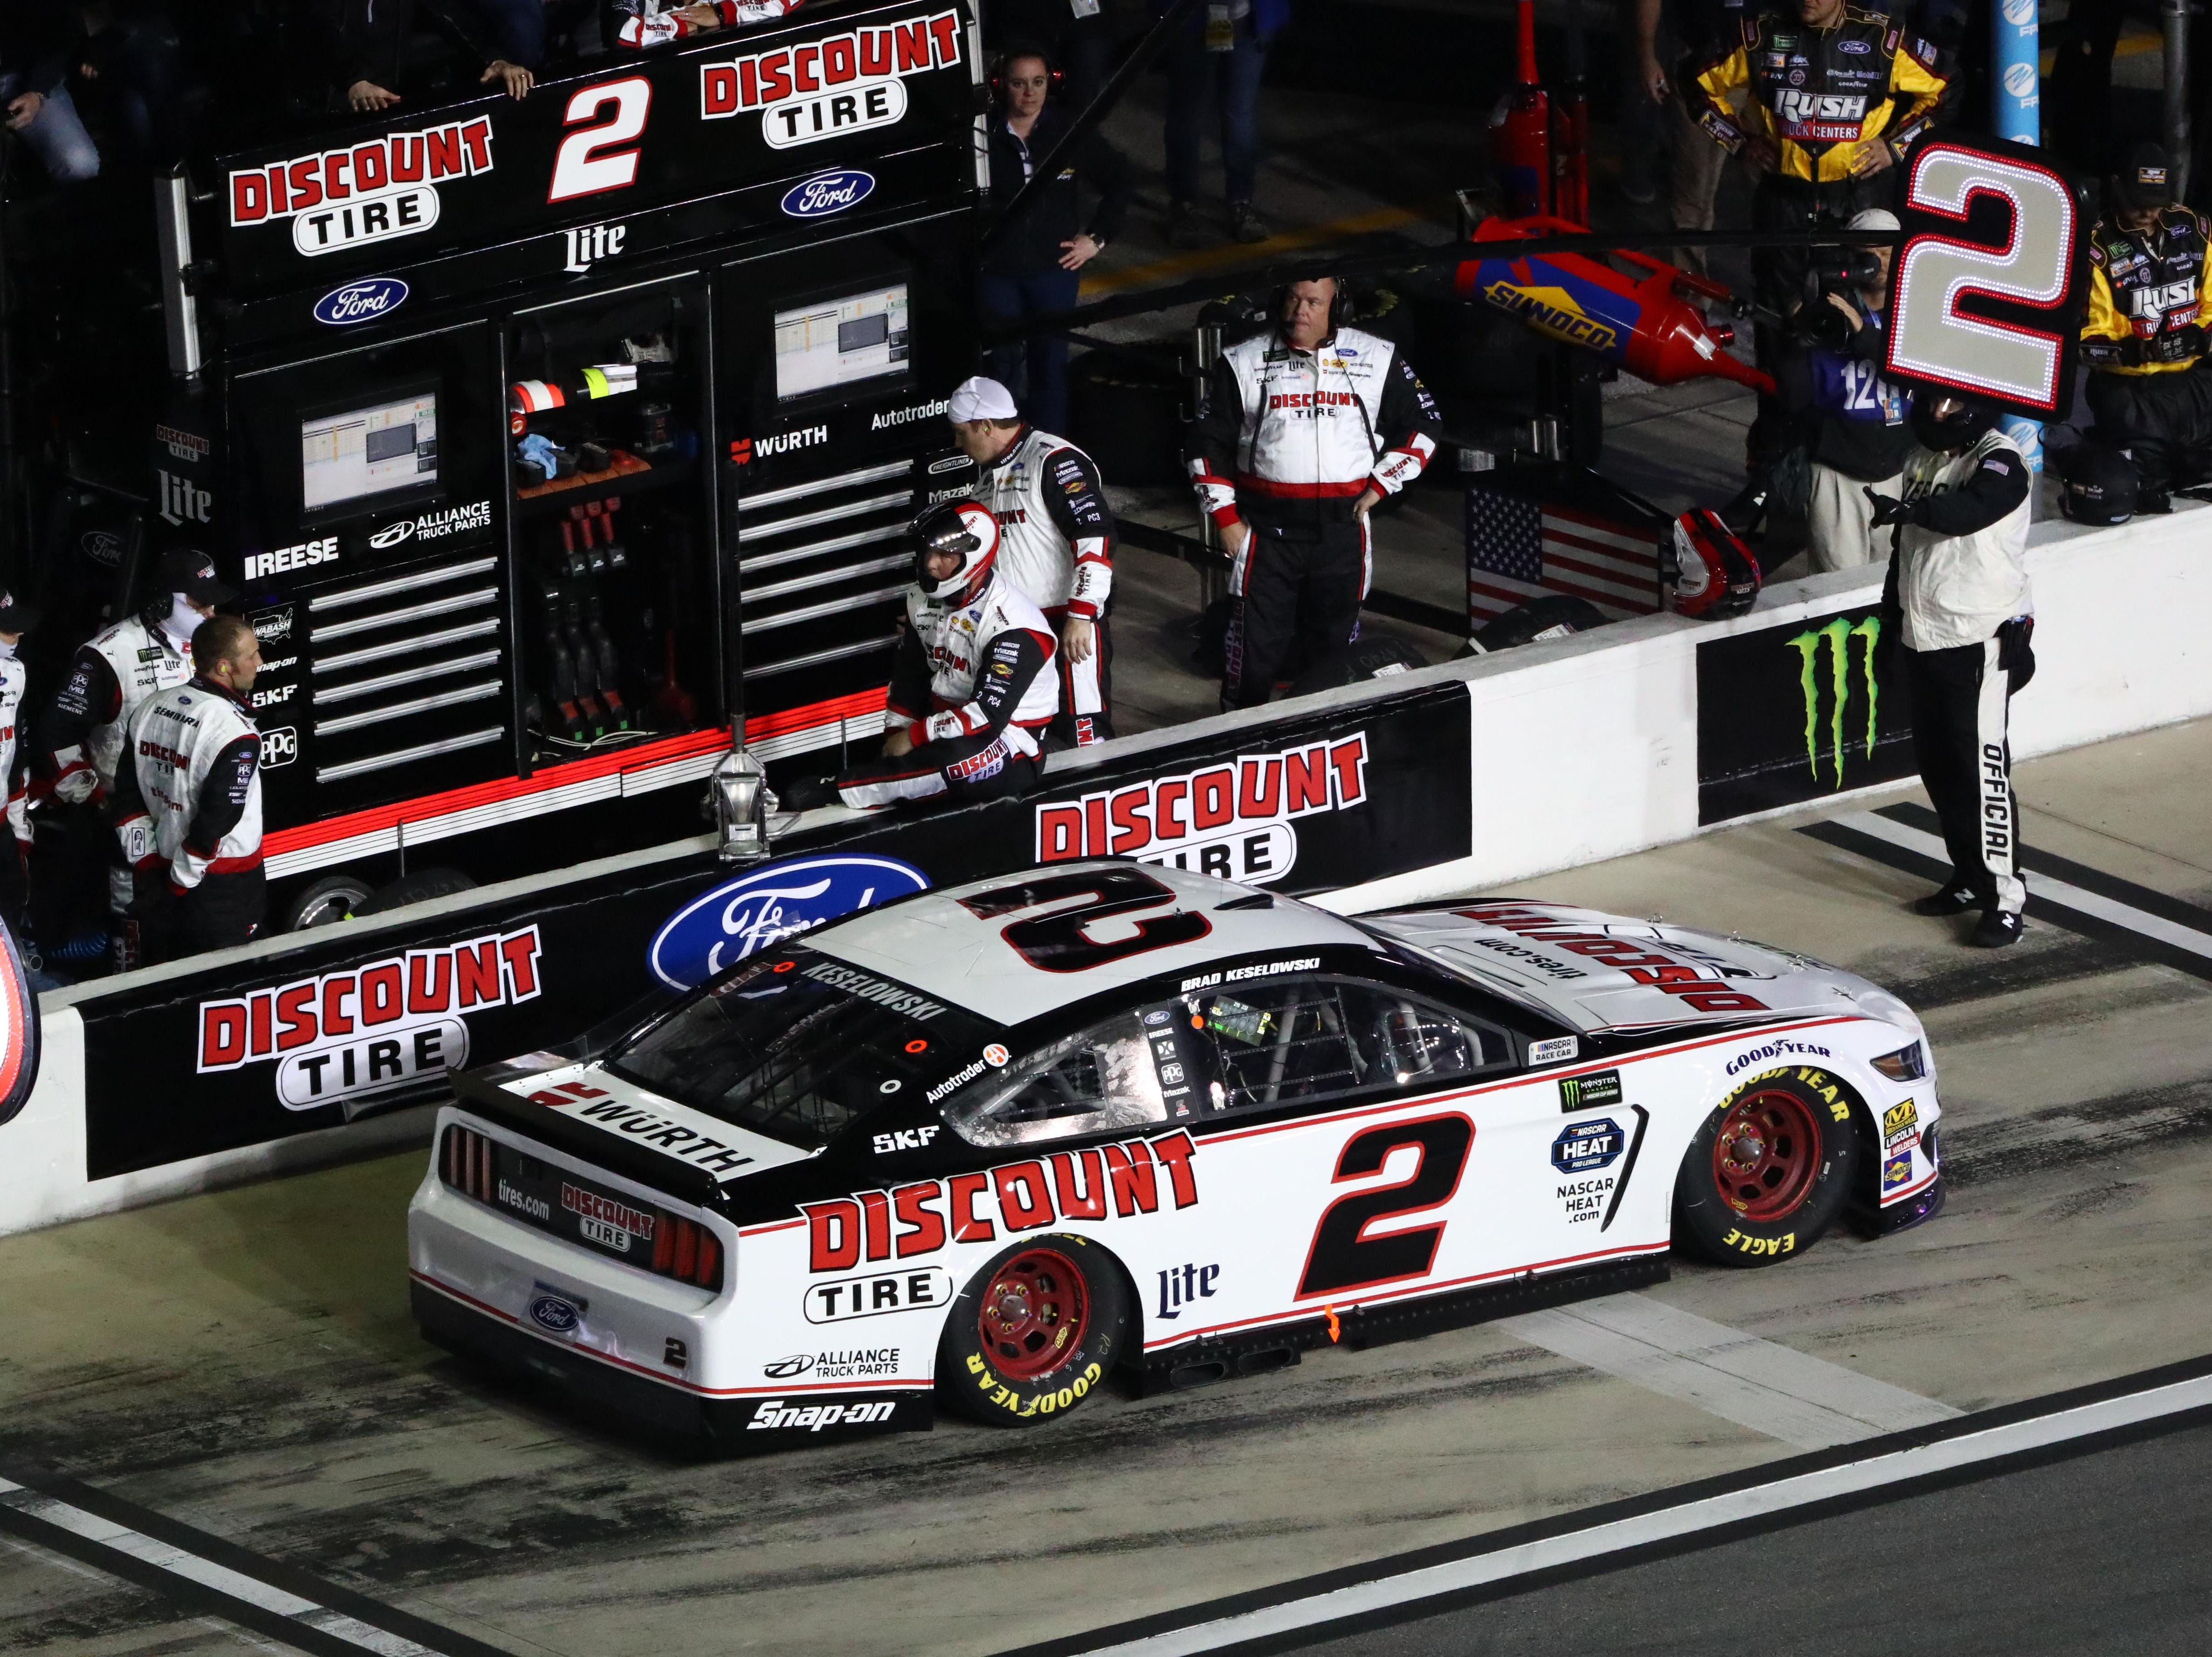 Feb 14: Brad Keselowski (2) receives a one-lap penalty for pitting outside the box during the Gander RV Duel 1. He received a second penalty for speeding on pit road.